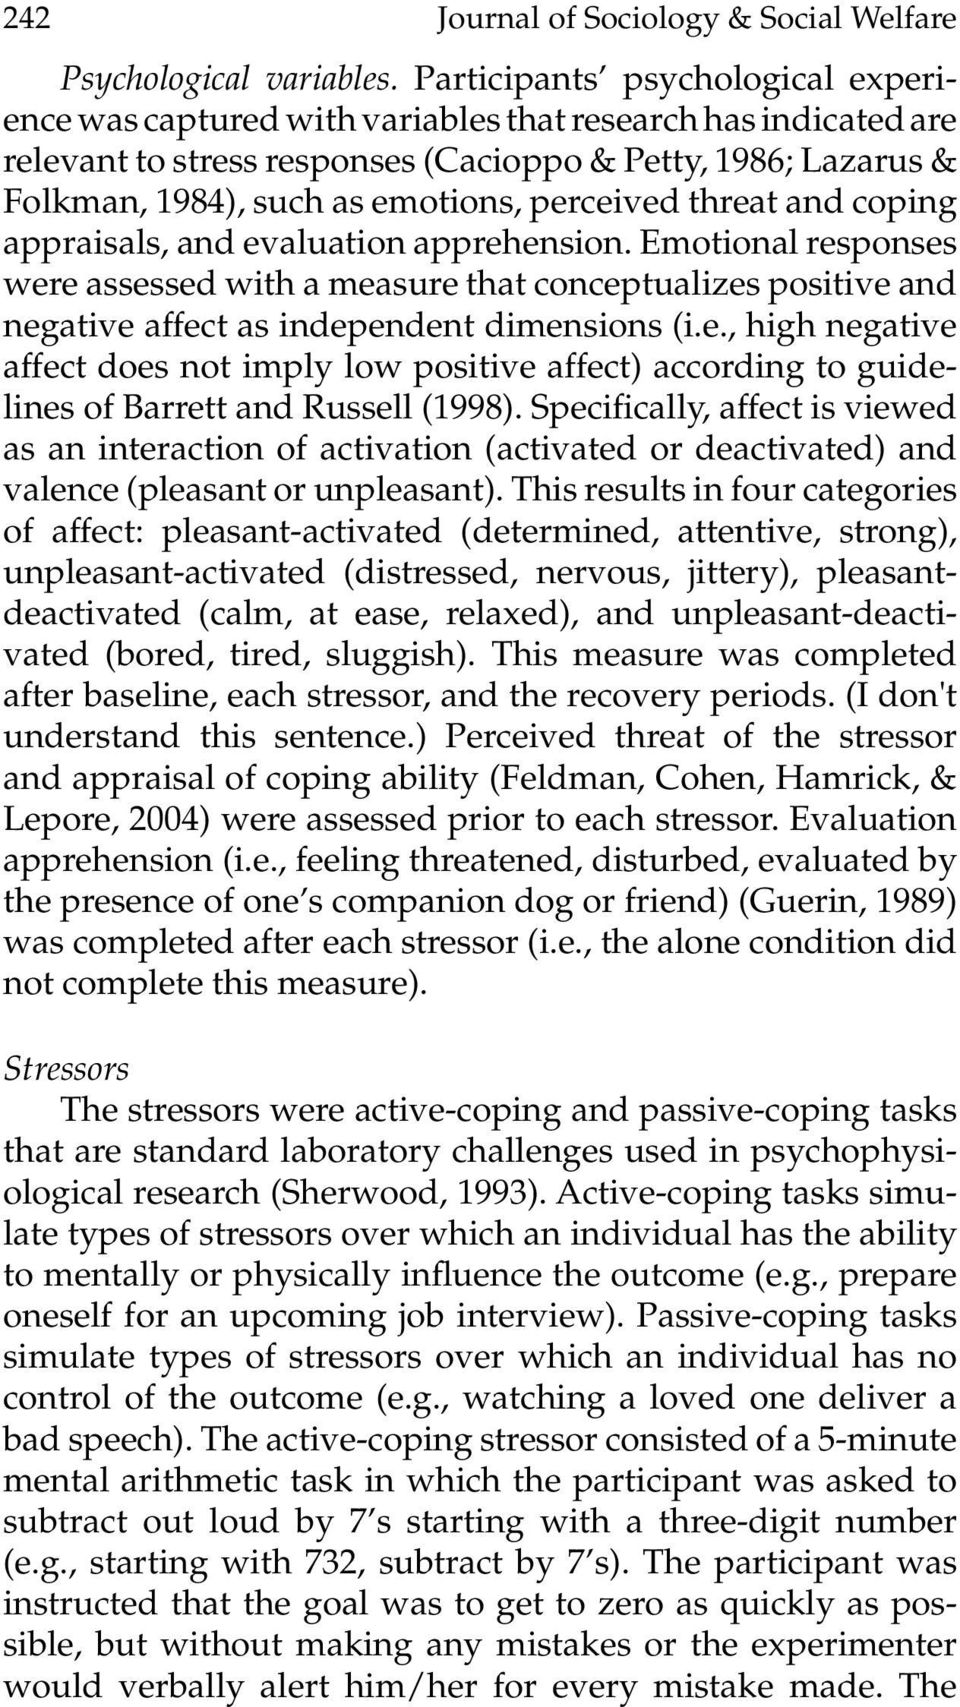 perceived threat and coping appraisals, and evaluation apprehension. Emotional responses were assessed with a measure that conceptualizes positive and negative affect as independent dimensions (i.e., high negative affect does not imply low positive affect) according to guidelines of Barrett and Russell (1998).